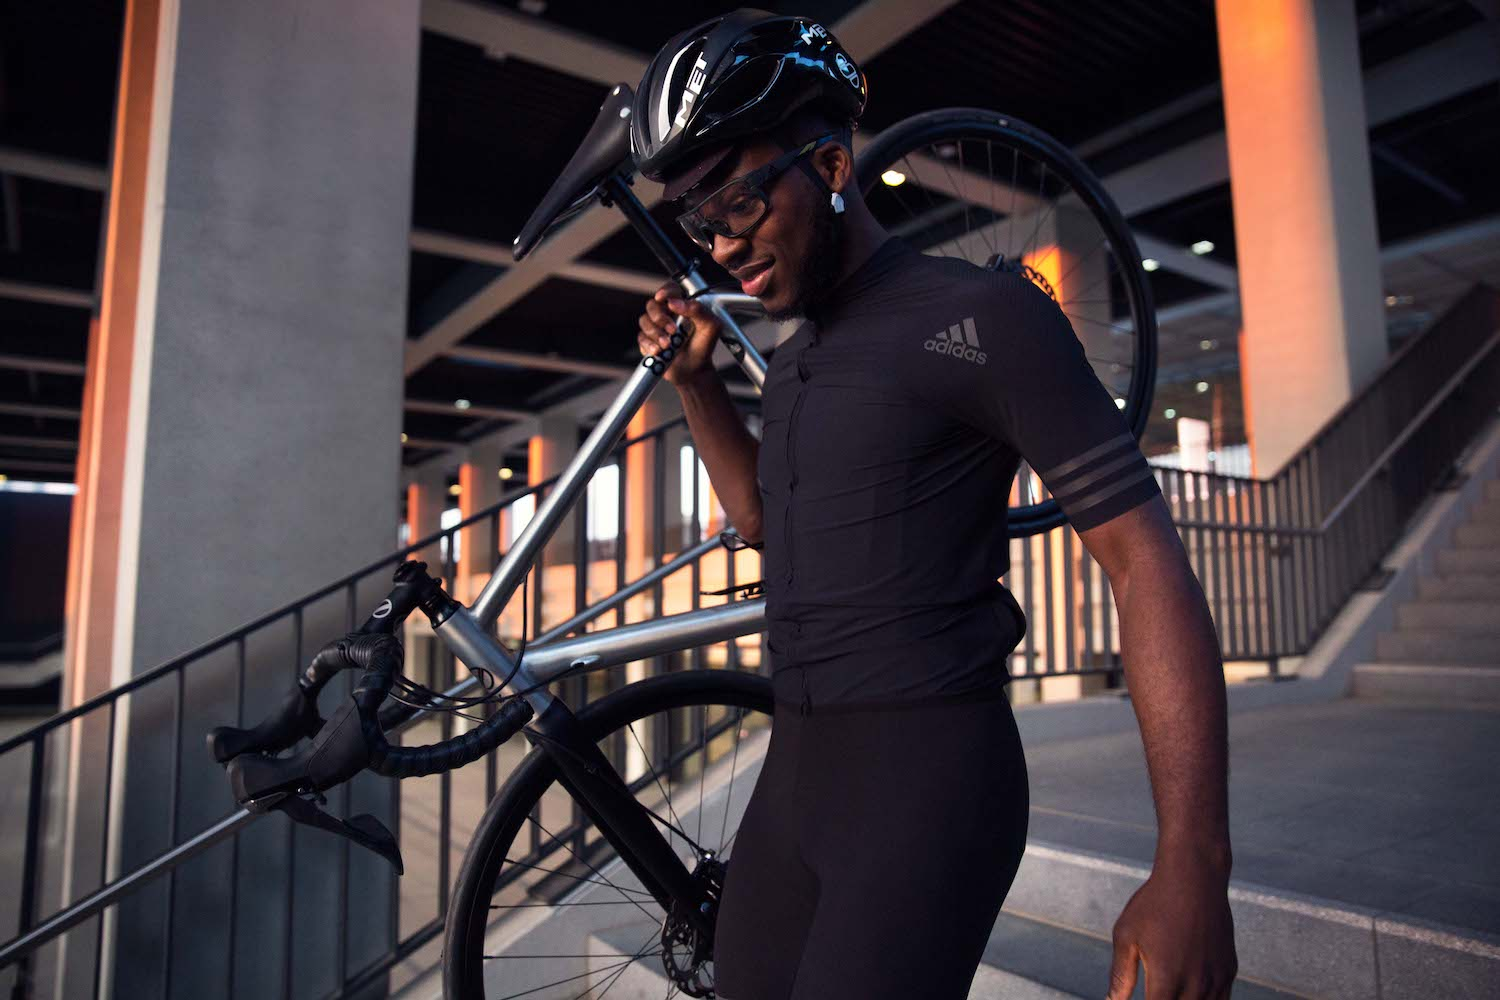 8bar adidas cycling apparel photo michael kleber 13 - Qudus is testing the new adidas cycling apparel